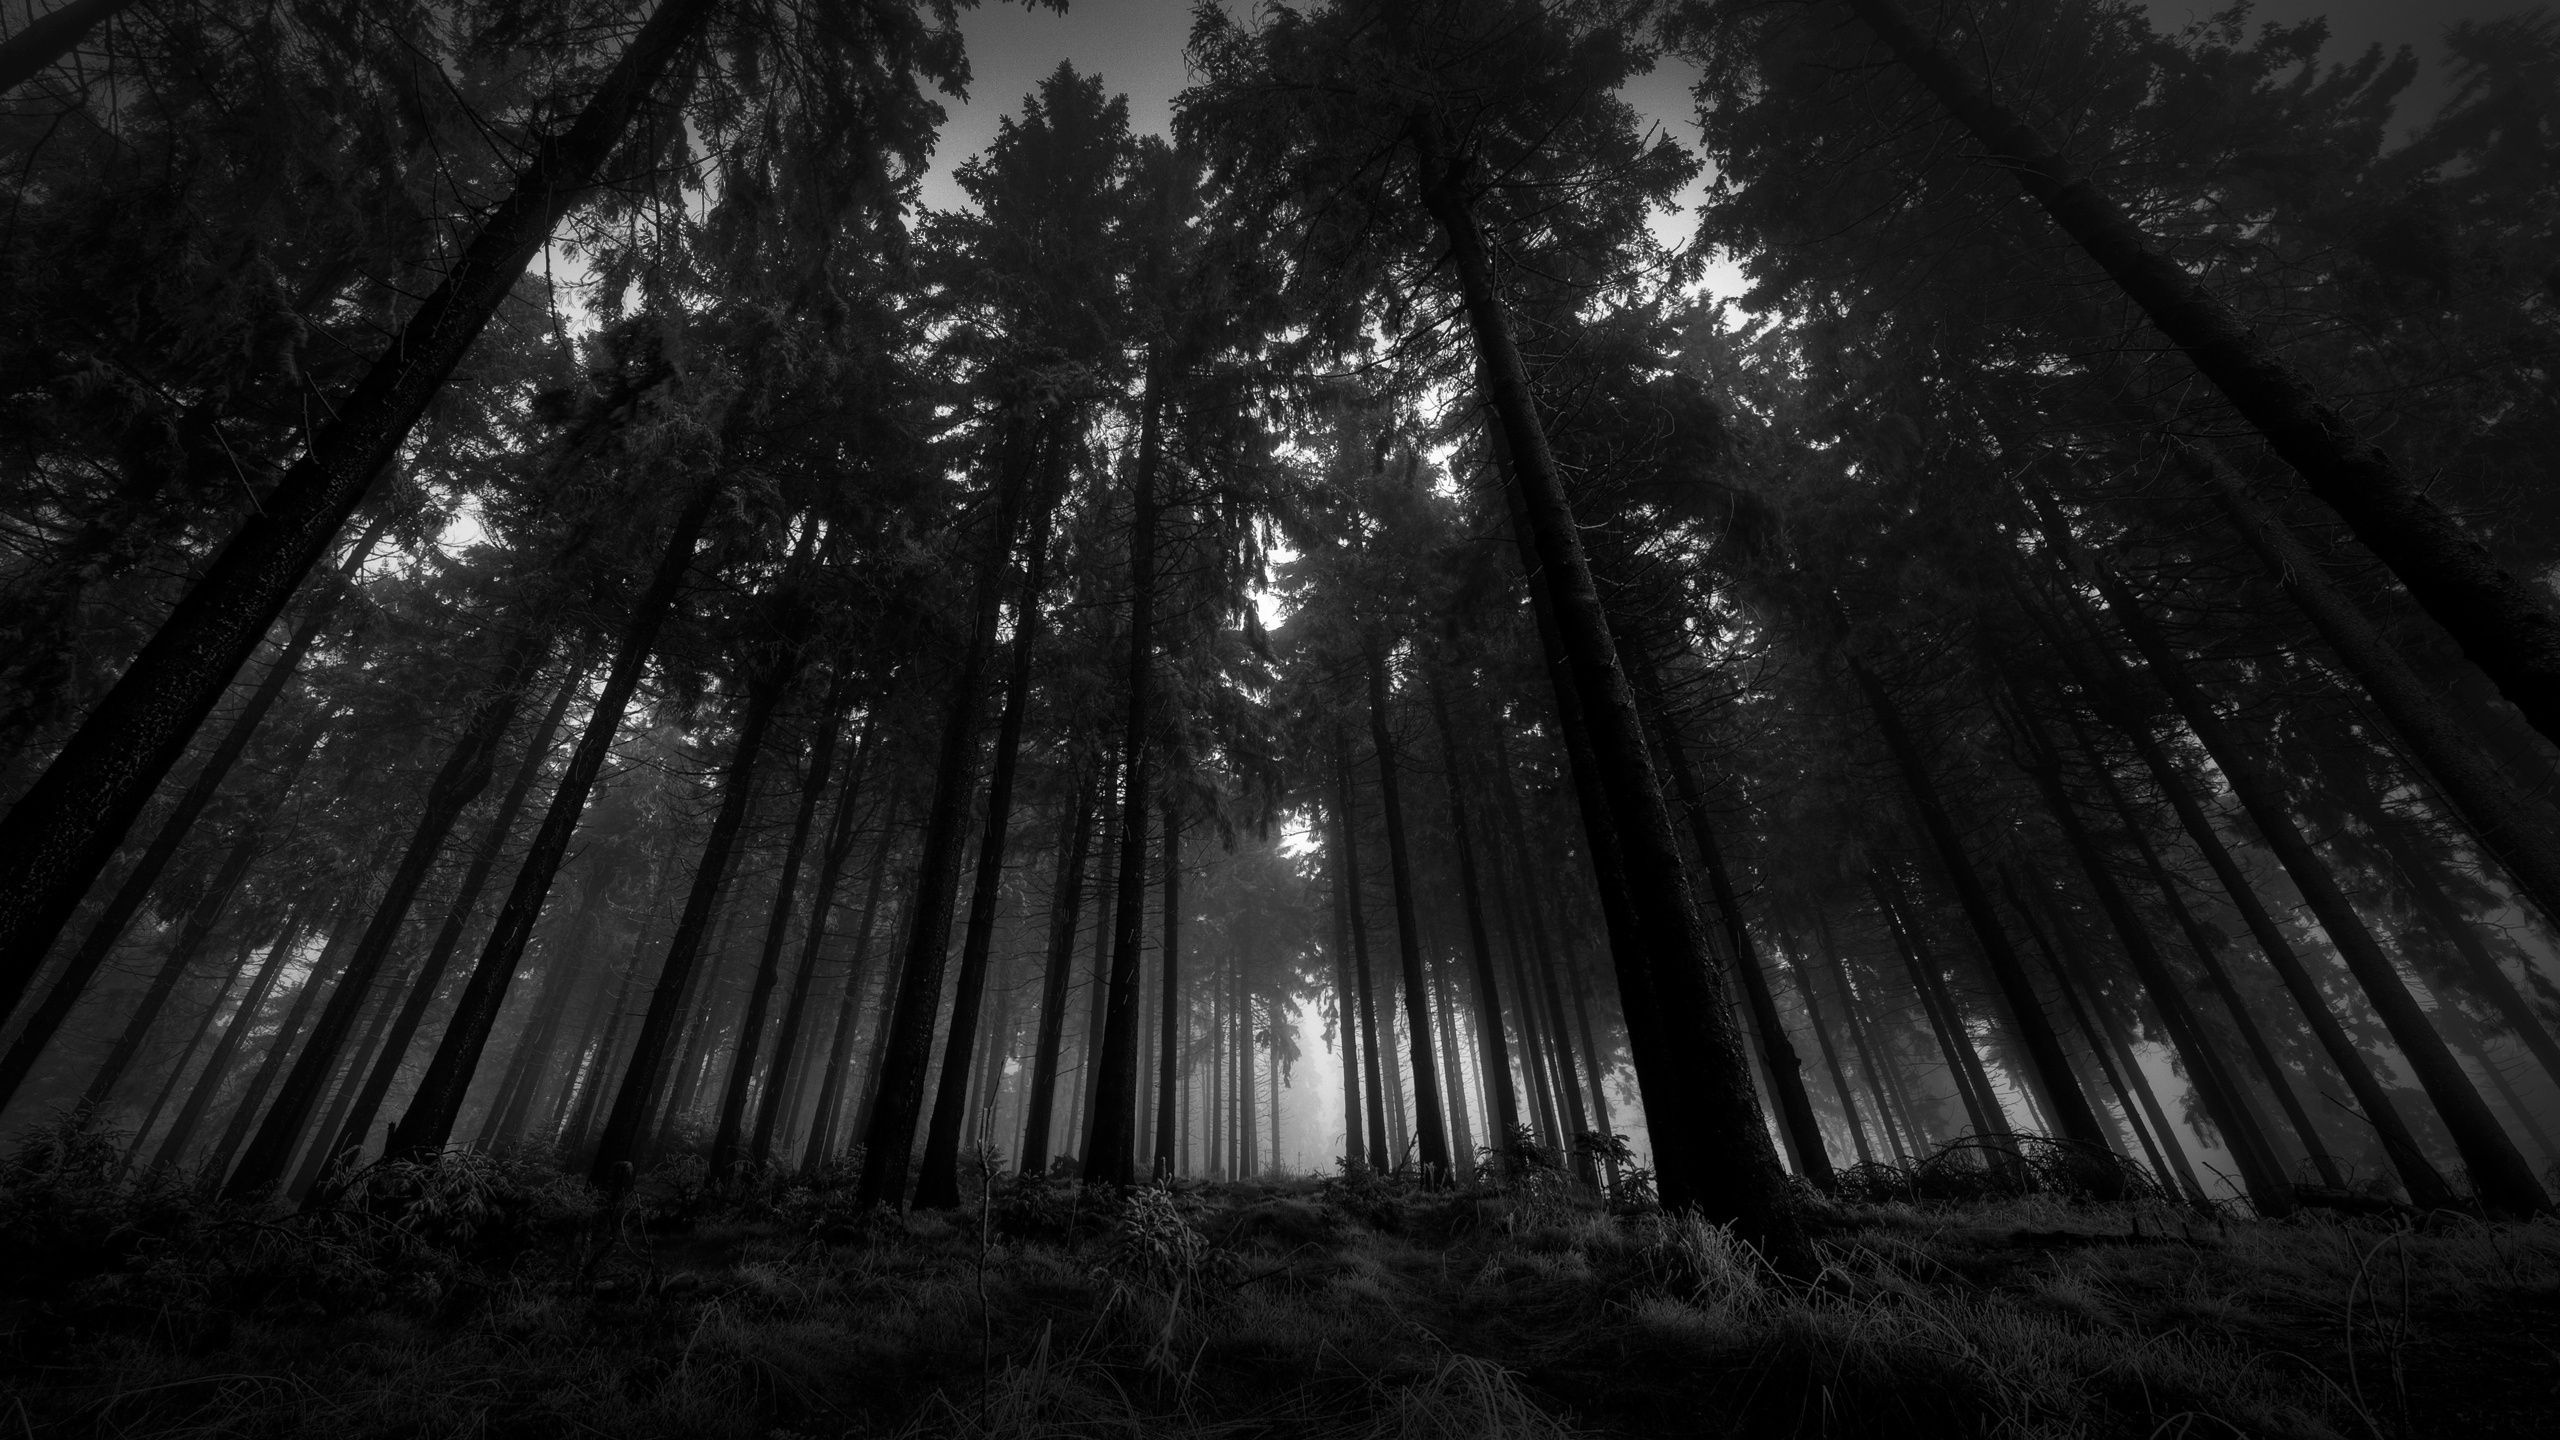 Download Dark Forest Wallpapers For Iphone For Iphone Pc Desktop Android Or Mac 1080p Hd Pat Dark Wood Wallpaper Dark Wallpaper Black And White Landscape